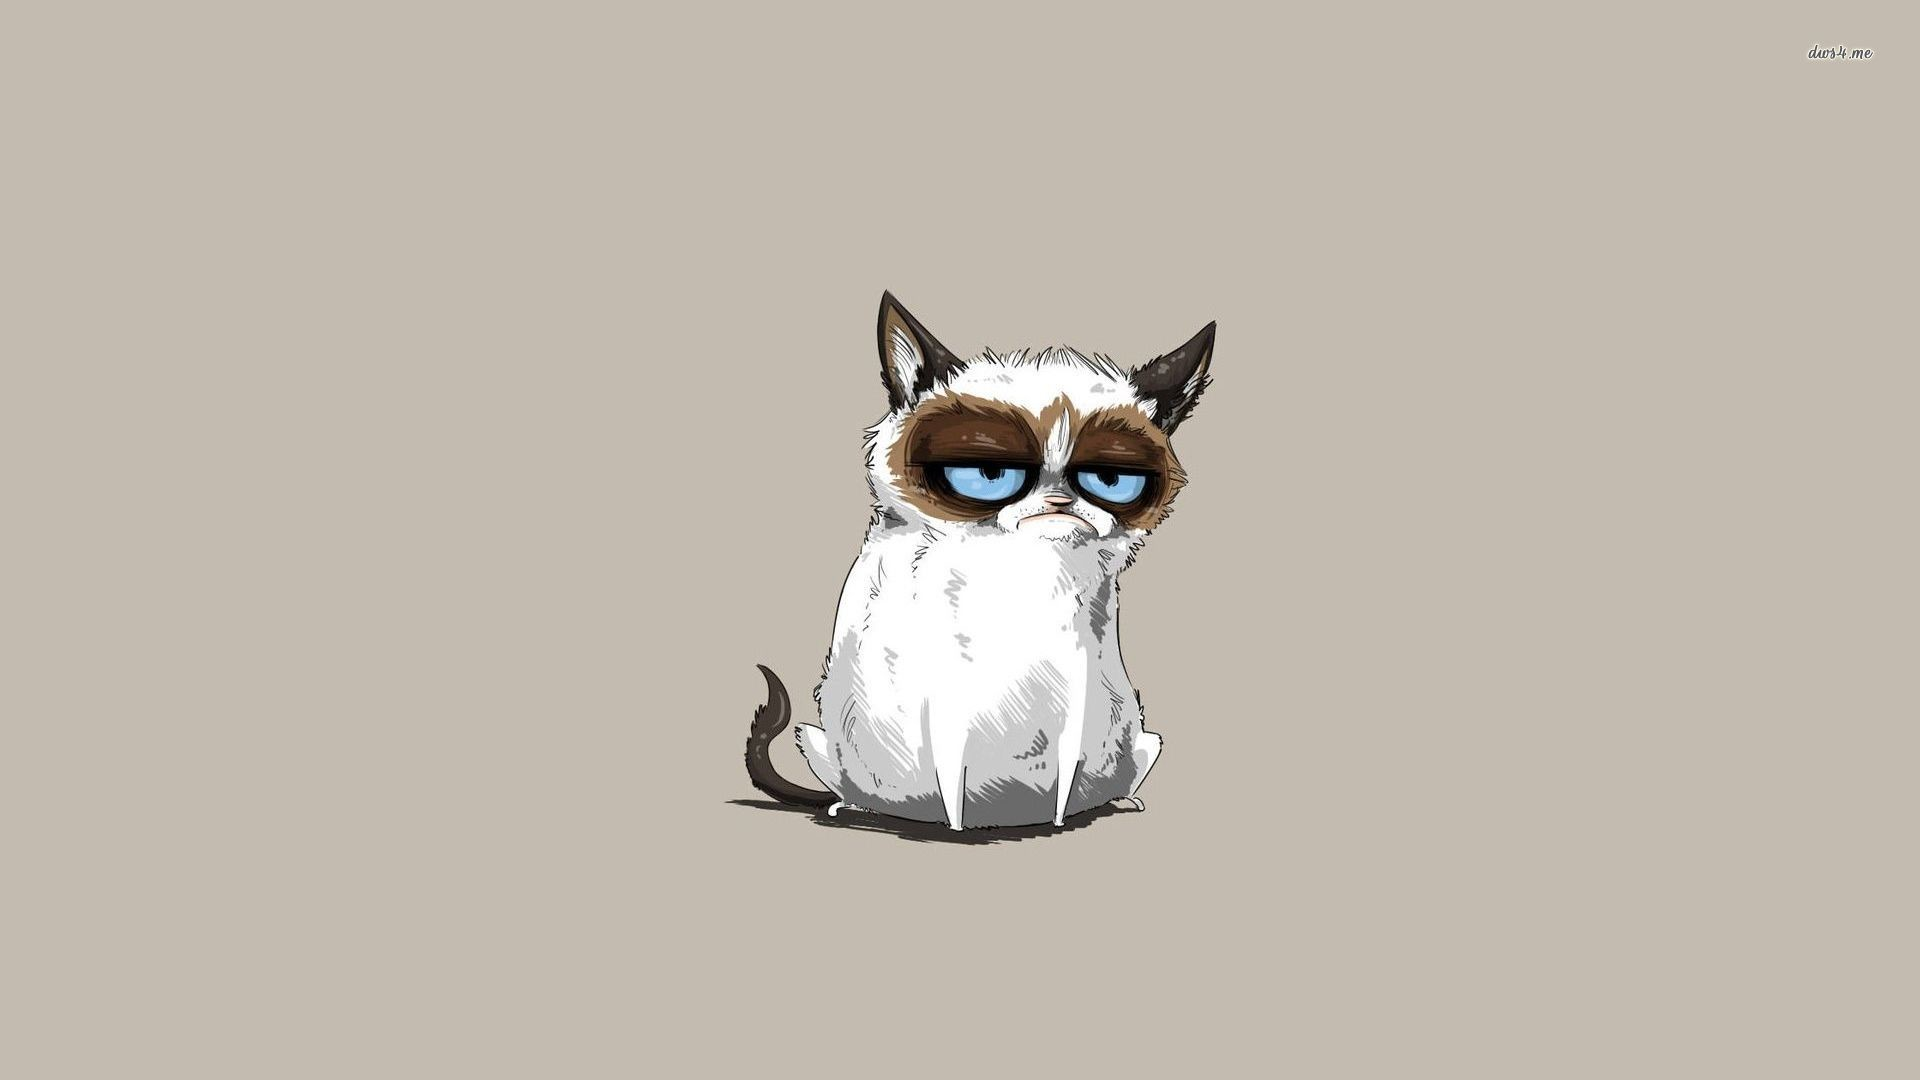 Cat · Grumpy Cat Wallpaper Background with HD …